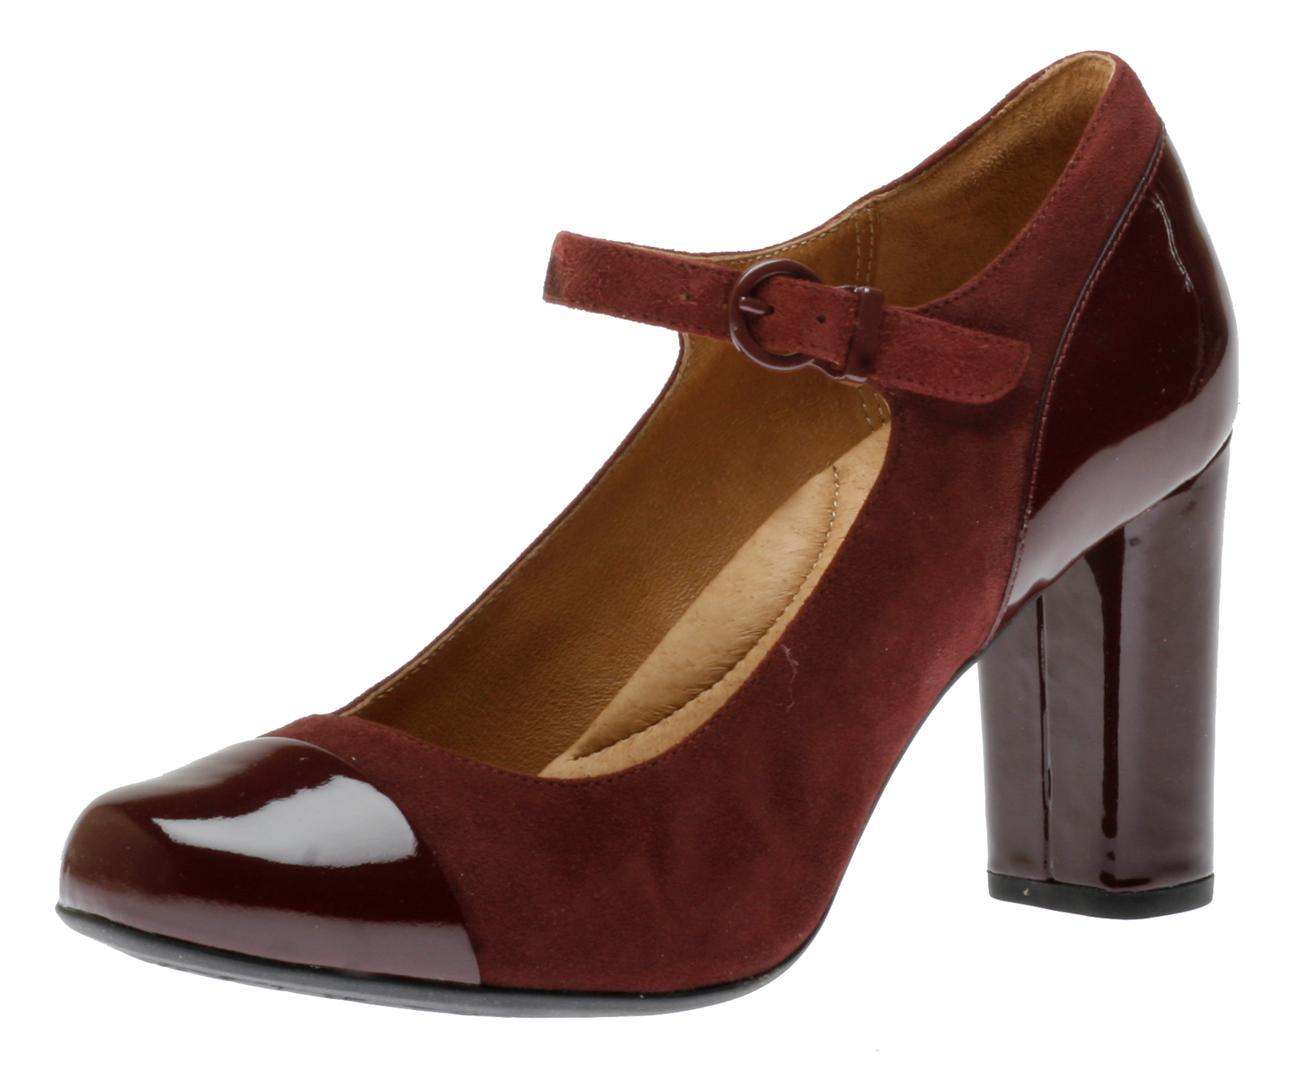 Pointed Toe Burgundy Woman Single Shoes Euramerican Style Silk Satin Leather Shallow Mouth Noble Women Dress